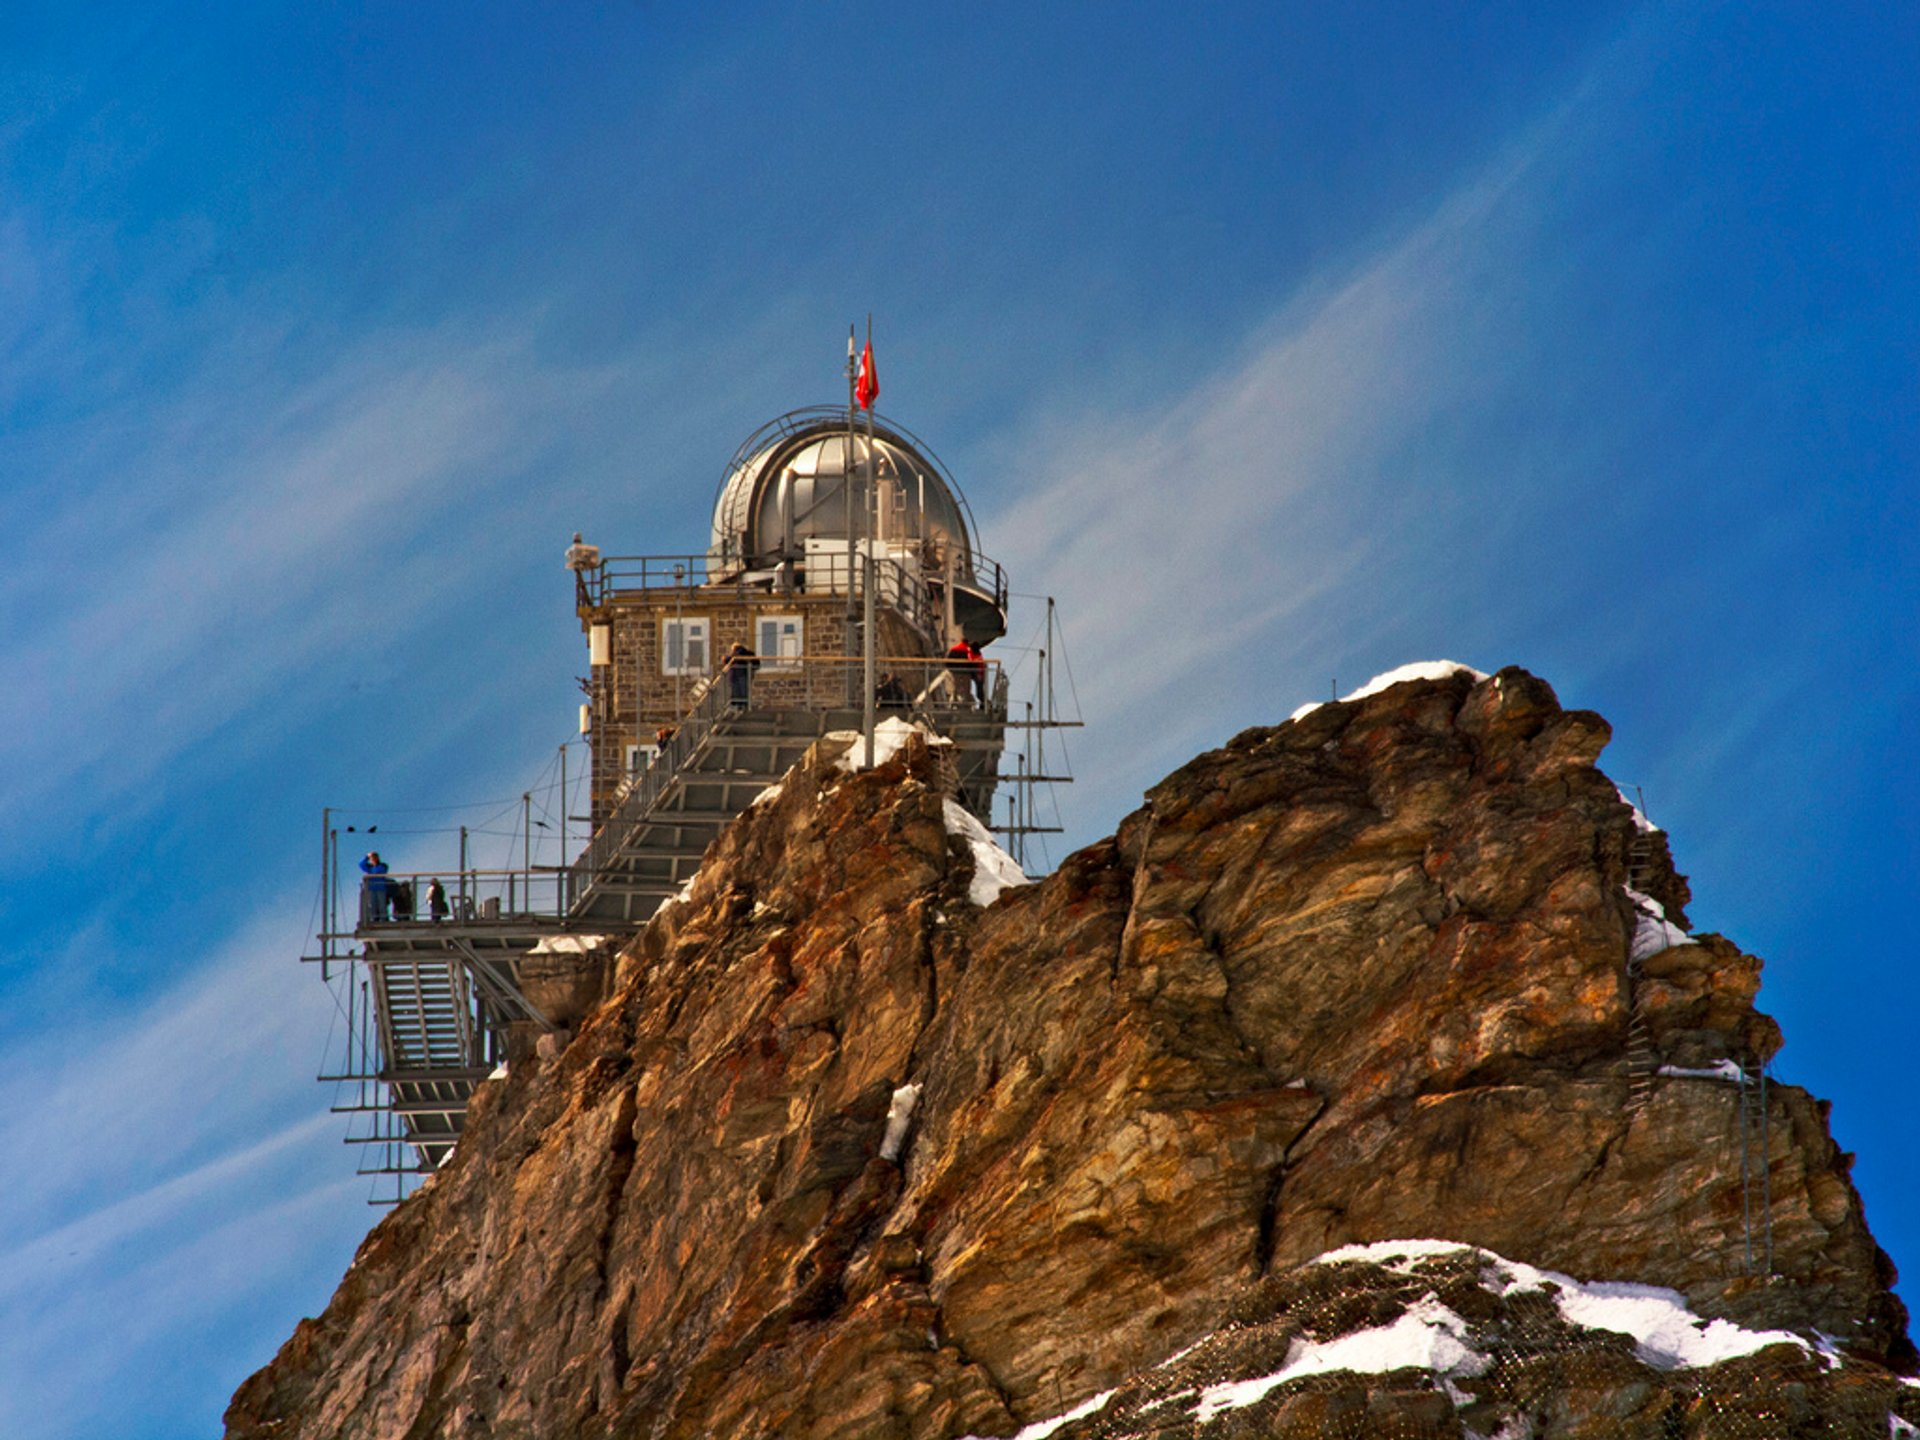 Jungfraujoch and the Sphinx Observatory in Switzerland 2020 - Best Time